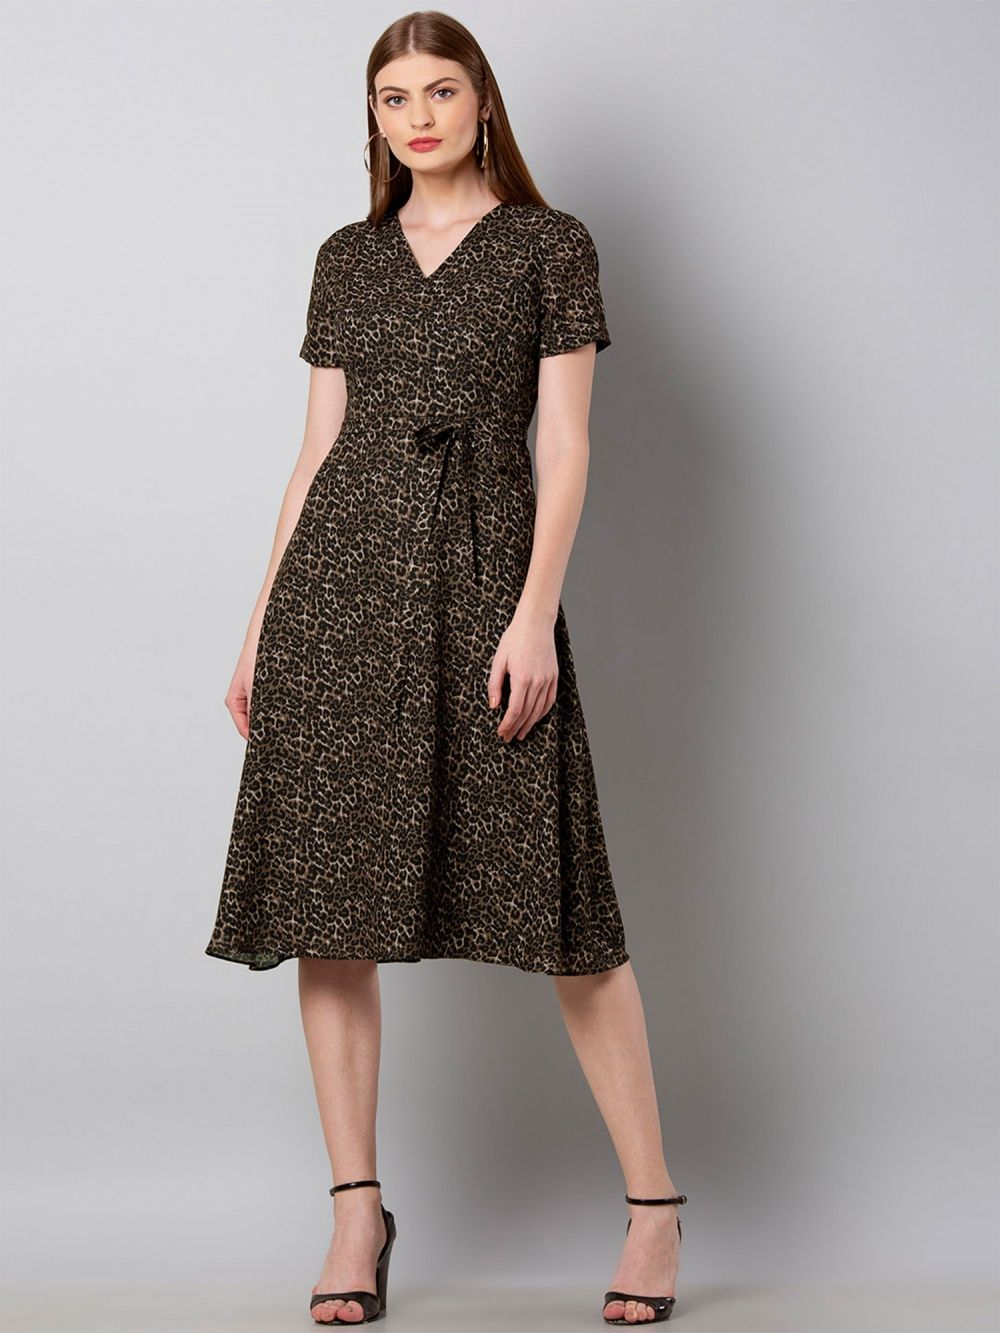 70abb3bed9f Faballey Dresses   Buy Faballey Brown Leopard Wrap Midi Dress Online ...